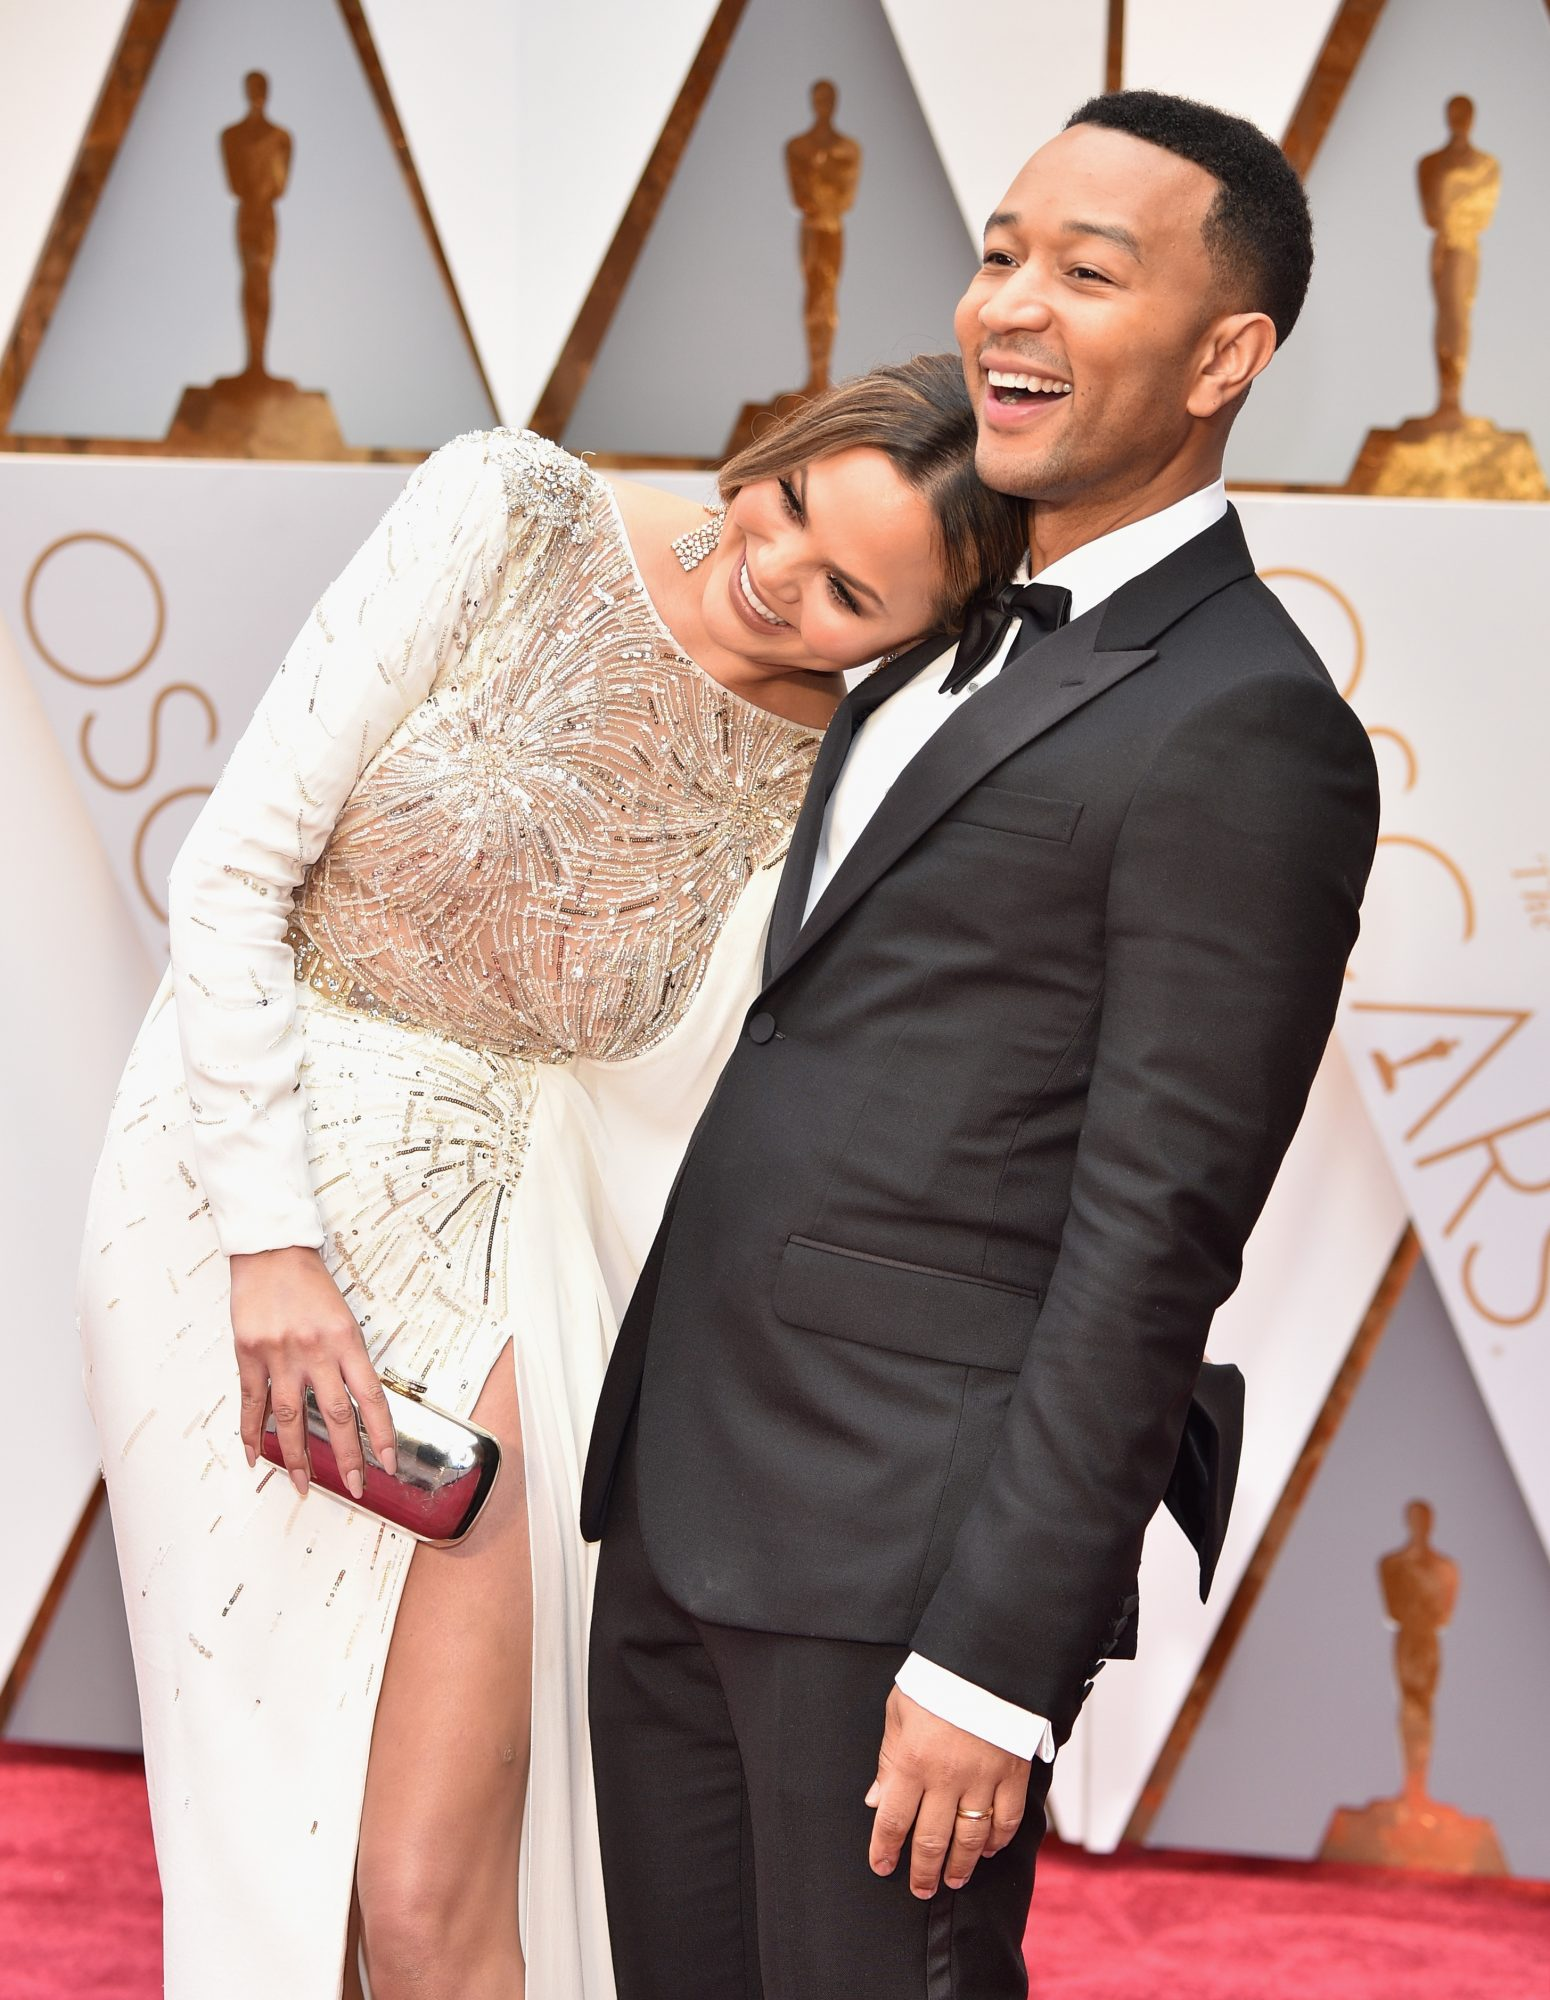 Chrissy Teigen and John Legend 2017 Oscars Red Carpet